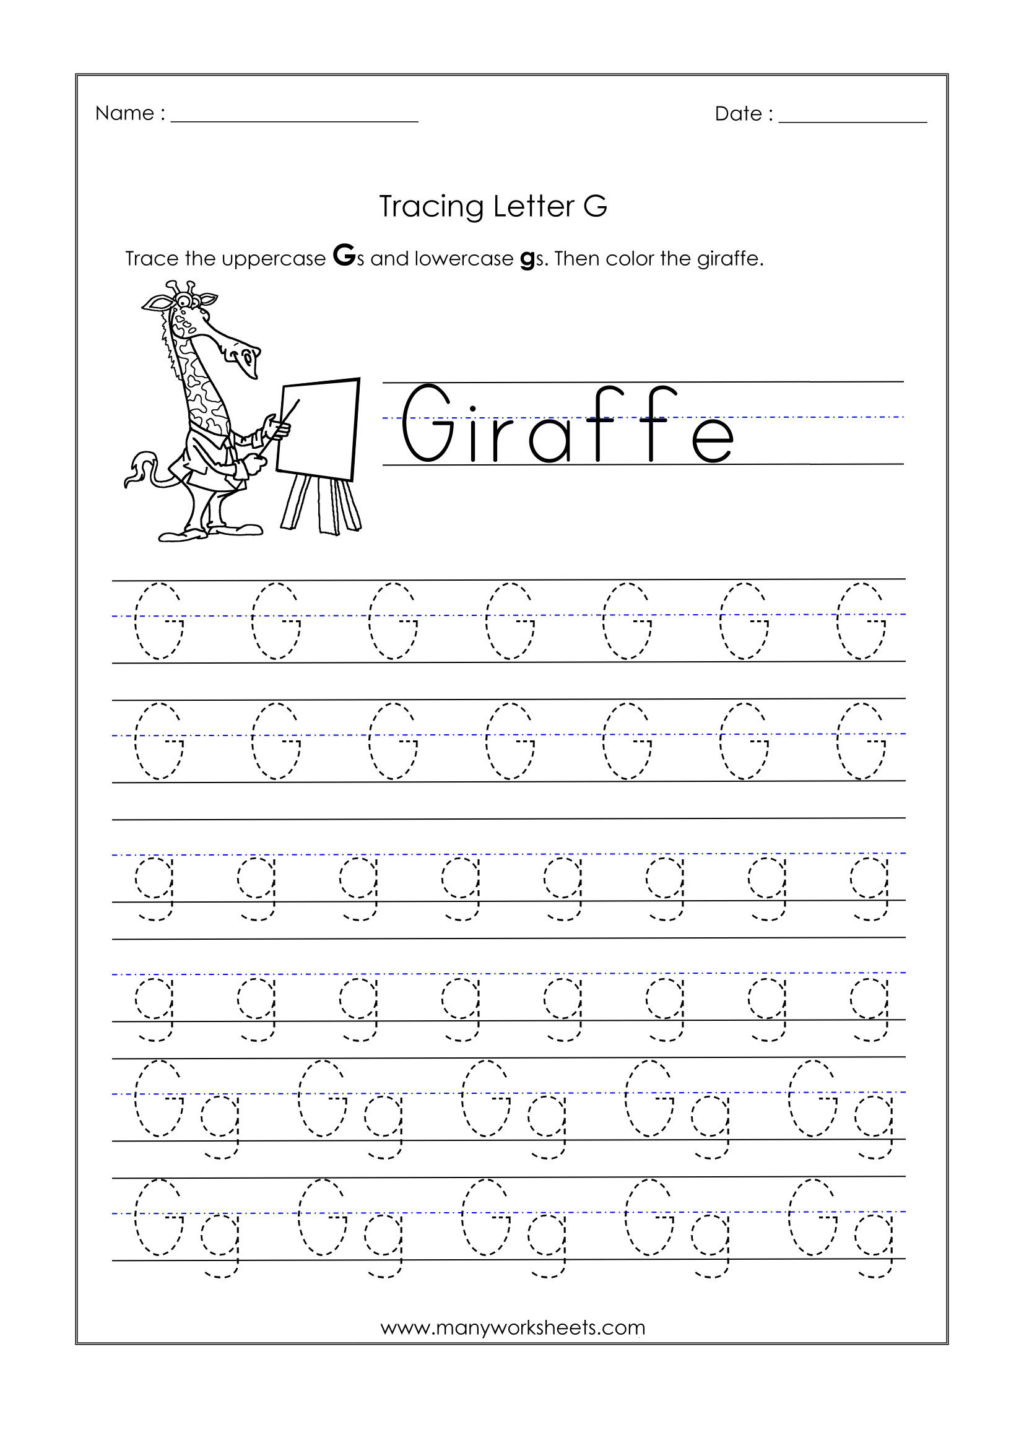 Preschool Letter G Worksheets Worksheet Kindergarten Tracing Worksheets Letter G